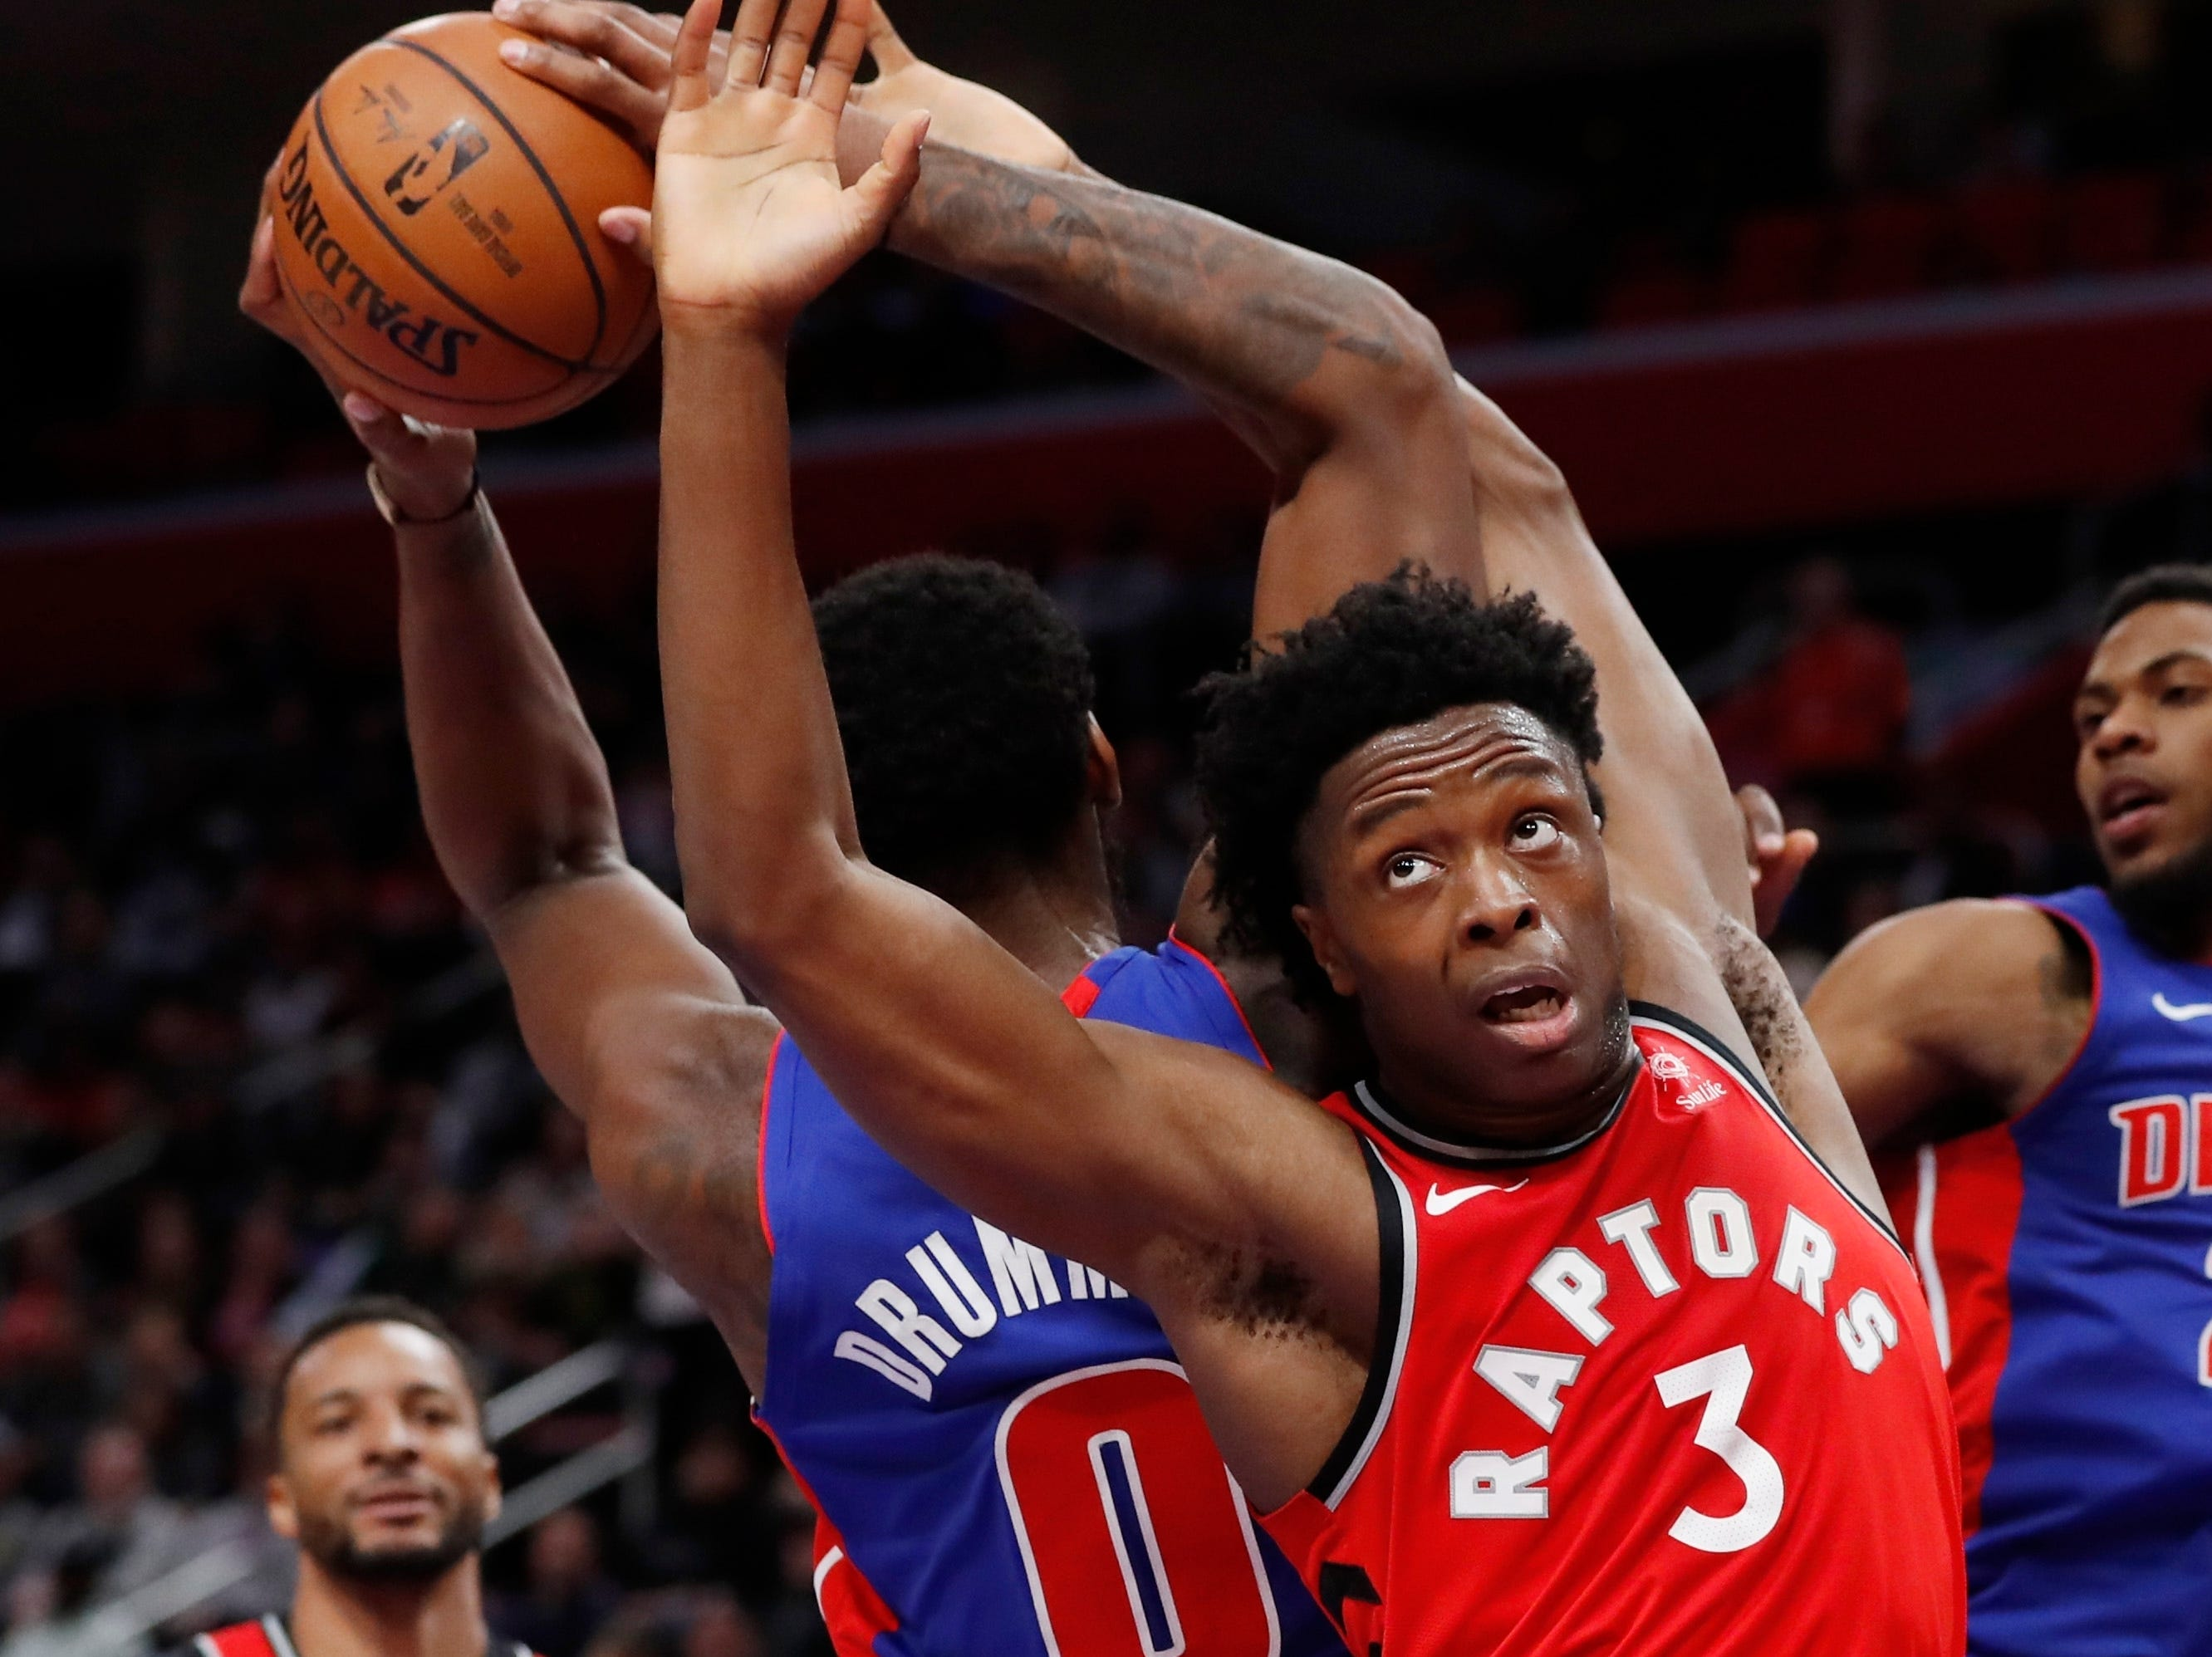 Detroit Pistons center Andre Drummond (0) grabs a rebound next to Toronto Raptors forward OG Anunoby (3) during the second half.